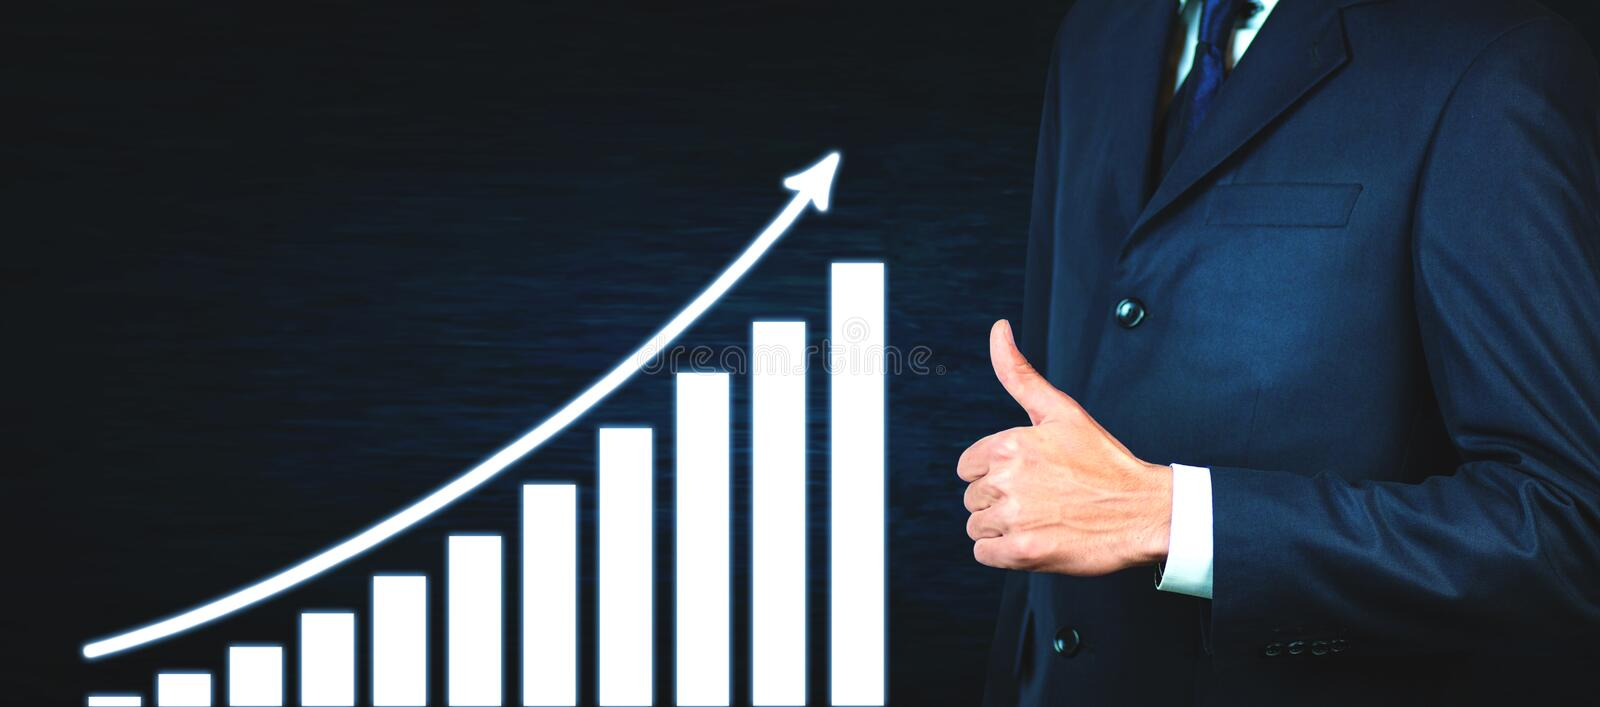 Businessman showing thumbs up sign. Growth graph. Success concept stock photography